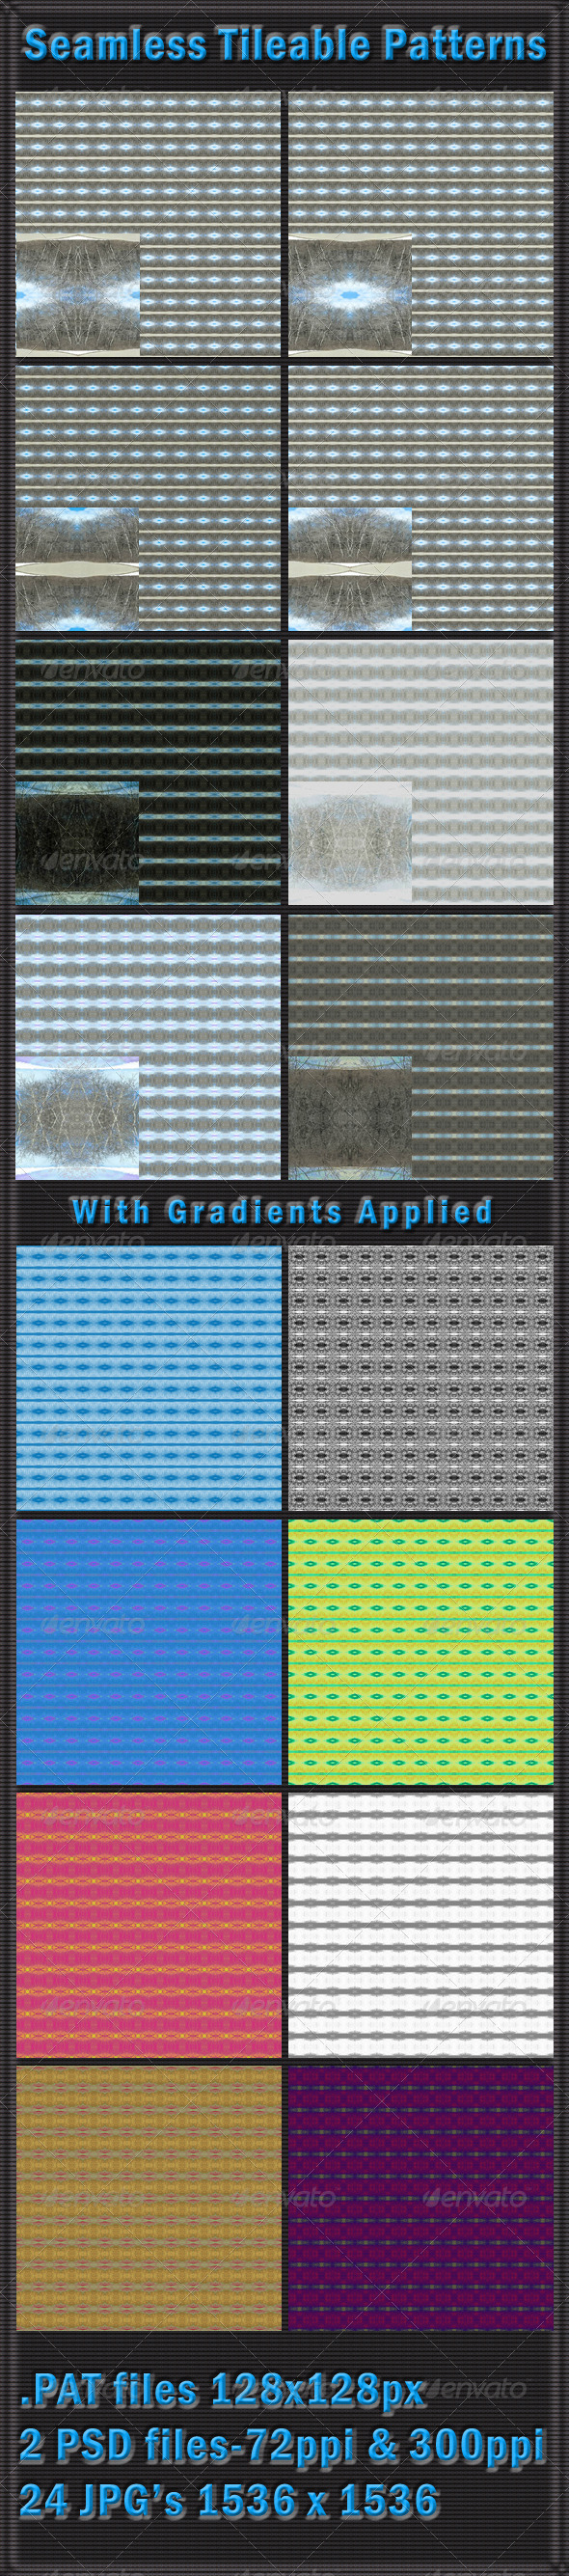 GraphicRiver 8 Seamless Tileable Patterns 4363194